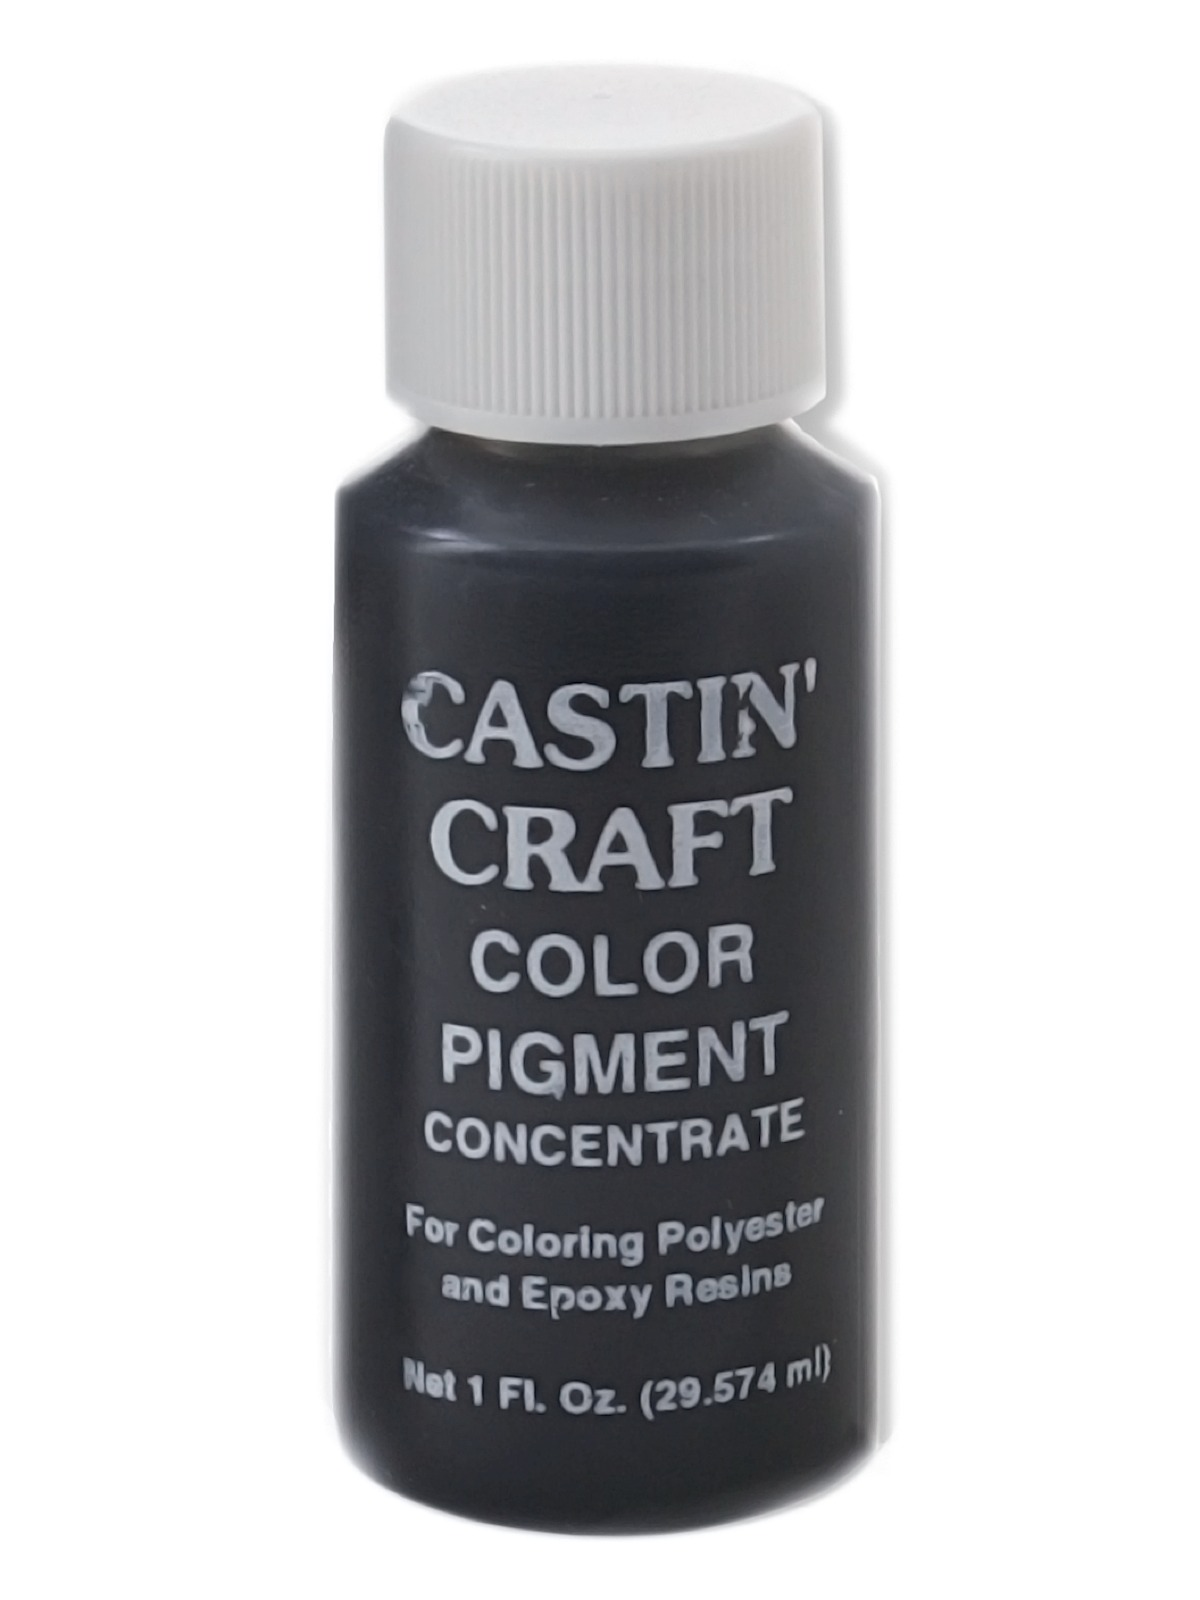 Castin 39 craft opaque pigments for Castin craft resin dye